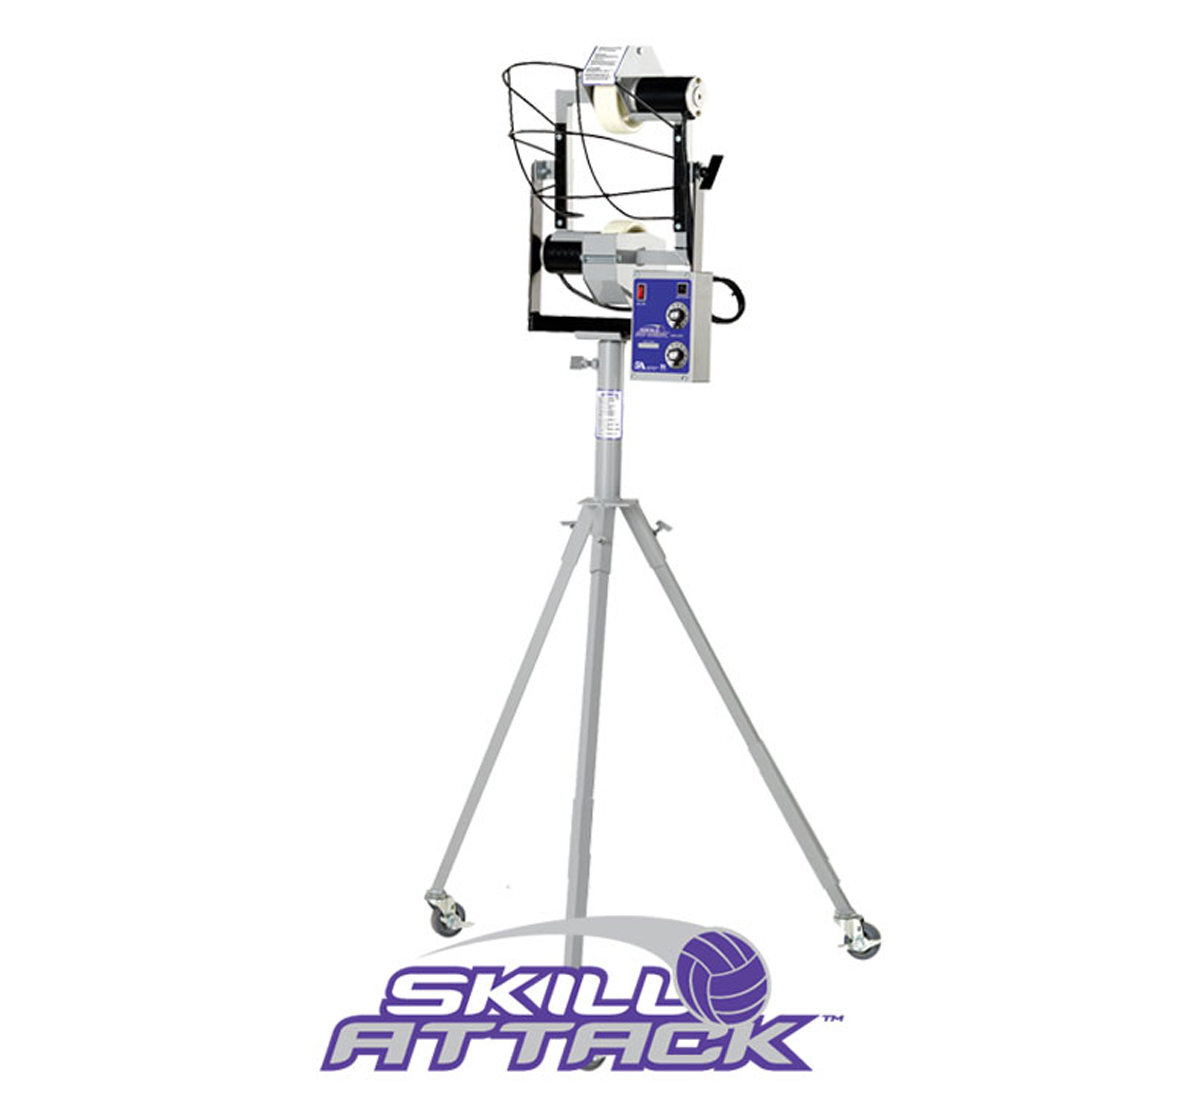 [NEW] Sports Attack Skill Attack Volleyabll Machine